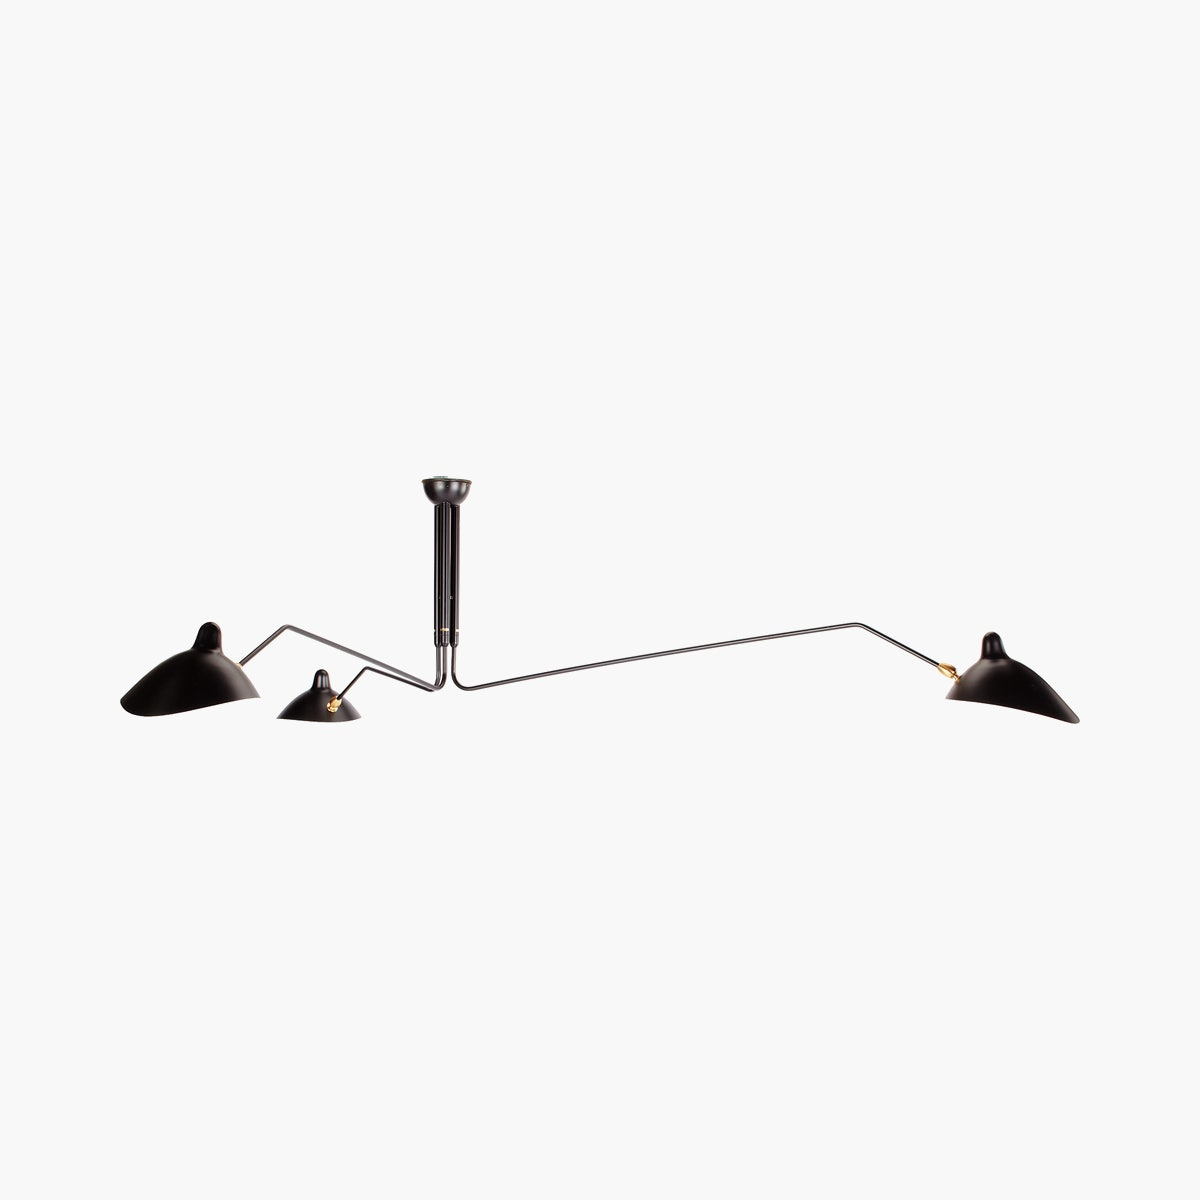 Serge Mouille Ceiling Lamp